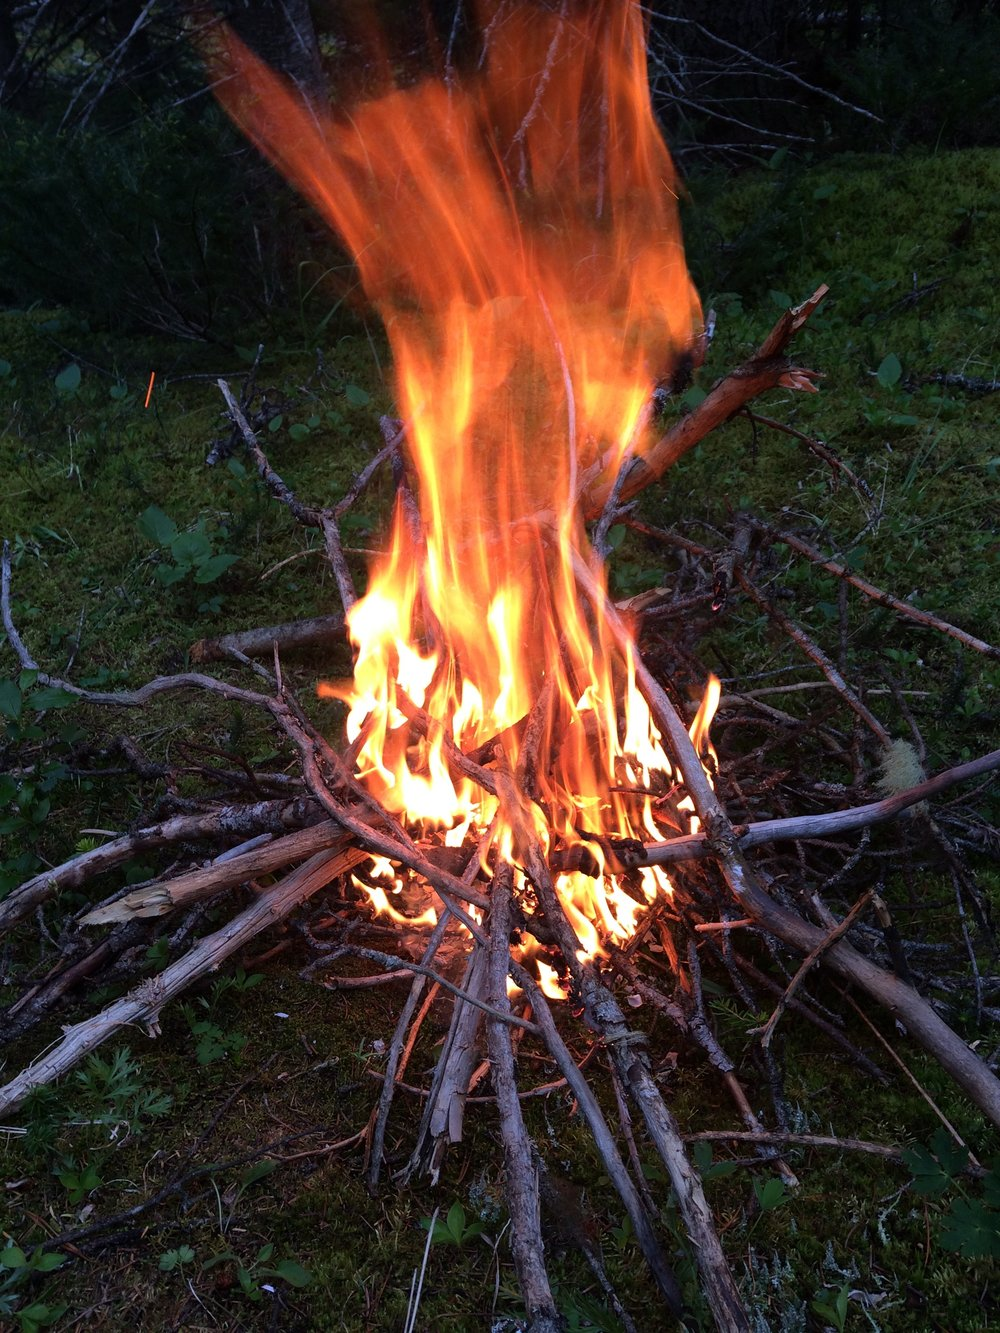 Fire ceremony, shamanic ceremonies offered by Courtney Wren Mabbutt, a therapist in Nelson, Castlegar, and the Slocan Valley.